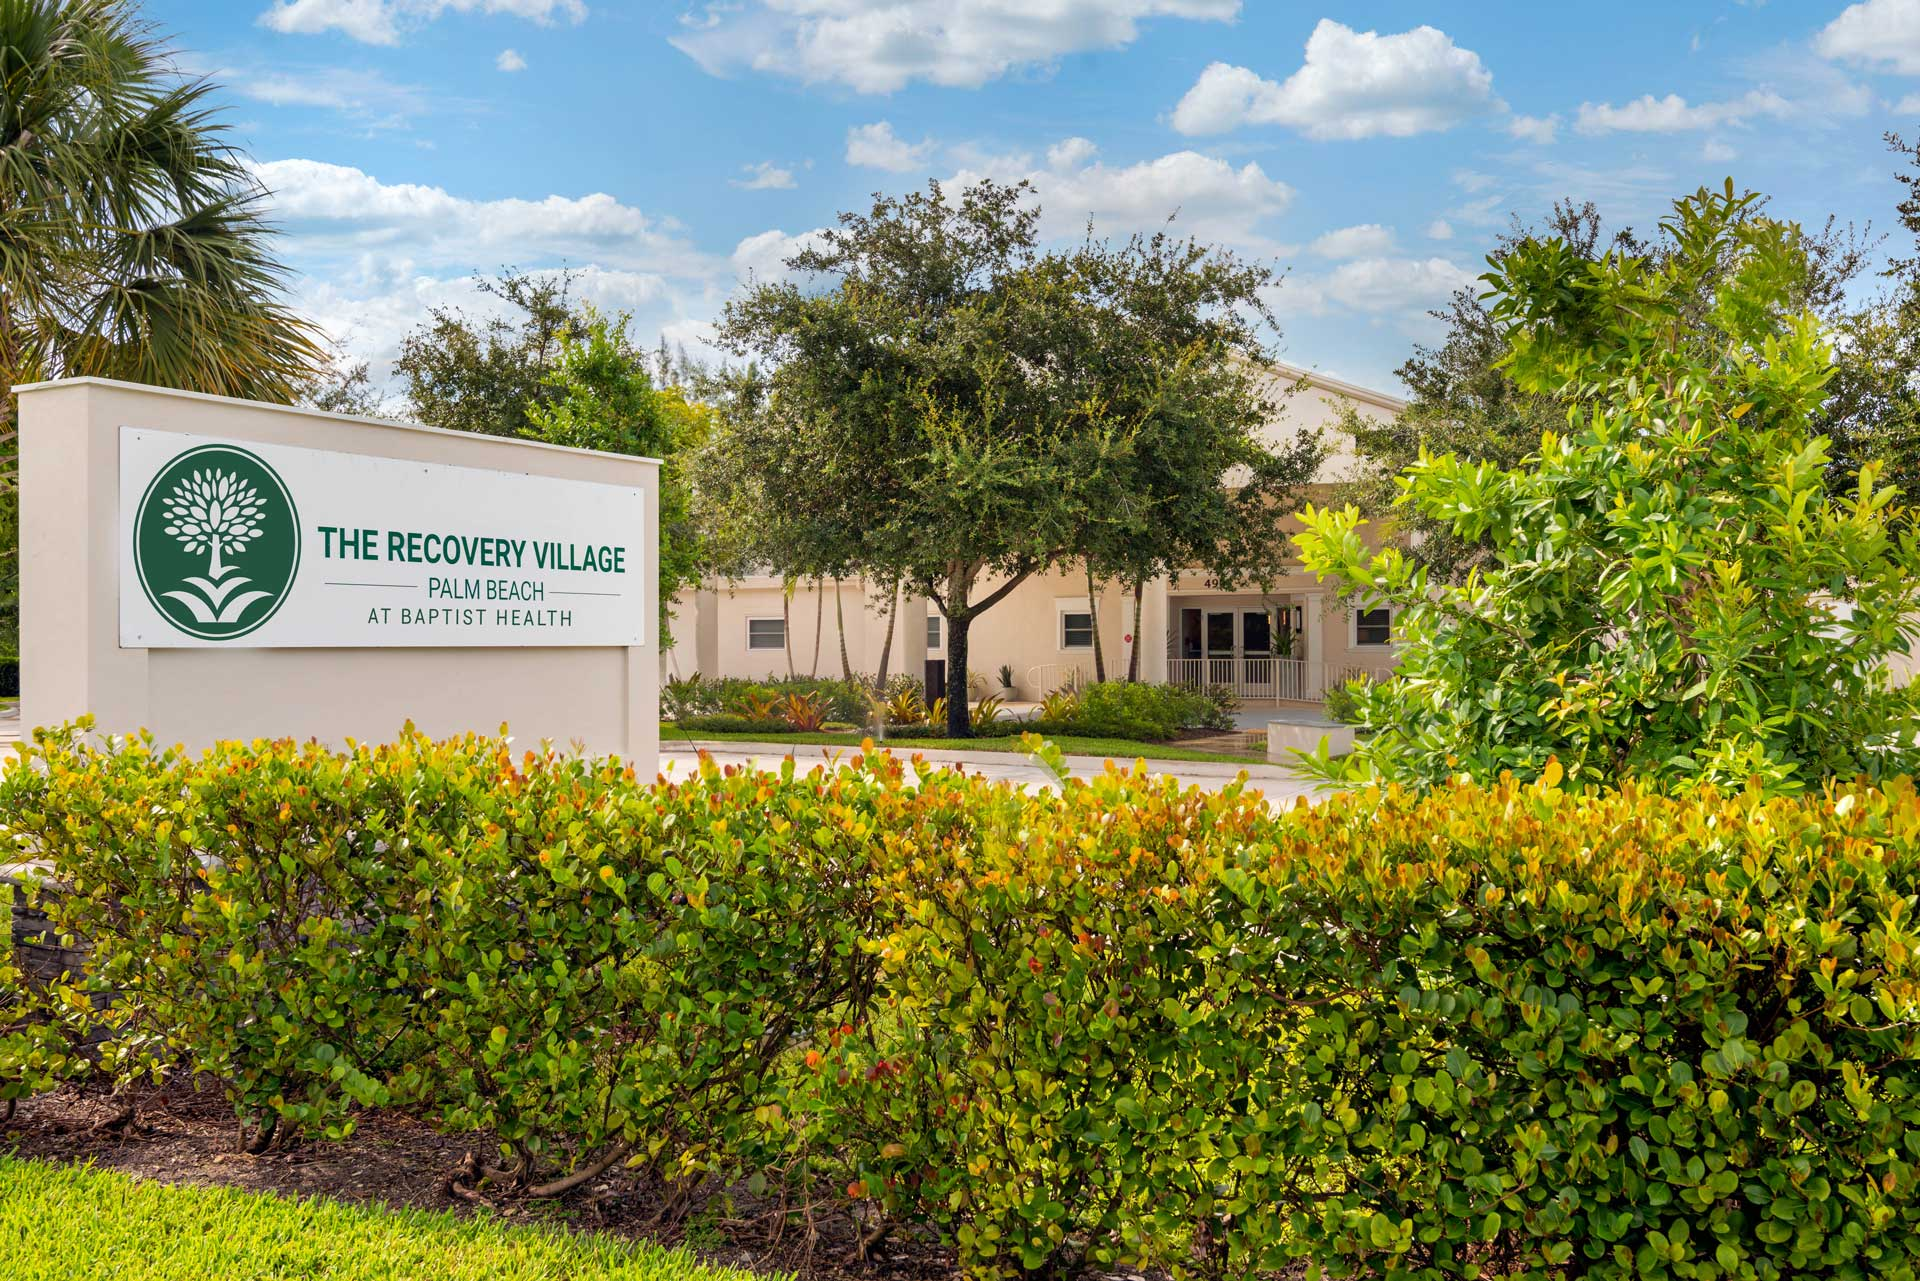 The Recovery Village Palm Beach at Baptist Health Joins the Aetna Insurance Network